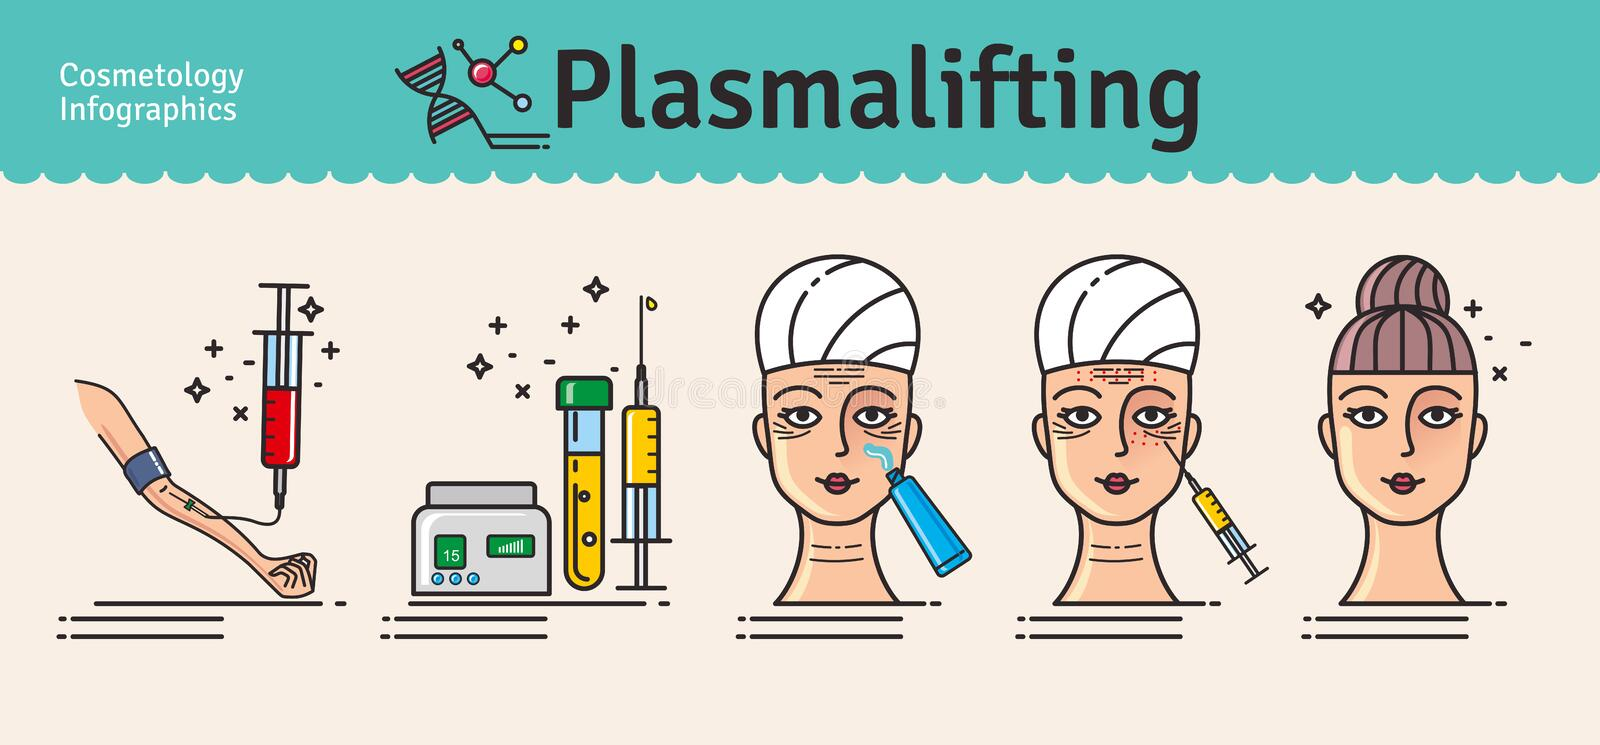 Ensemble illustré par vecteur avec la cosmétologie de salon plasmalifting illustration libre de droits